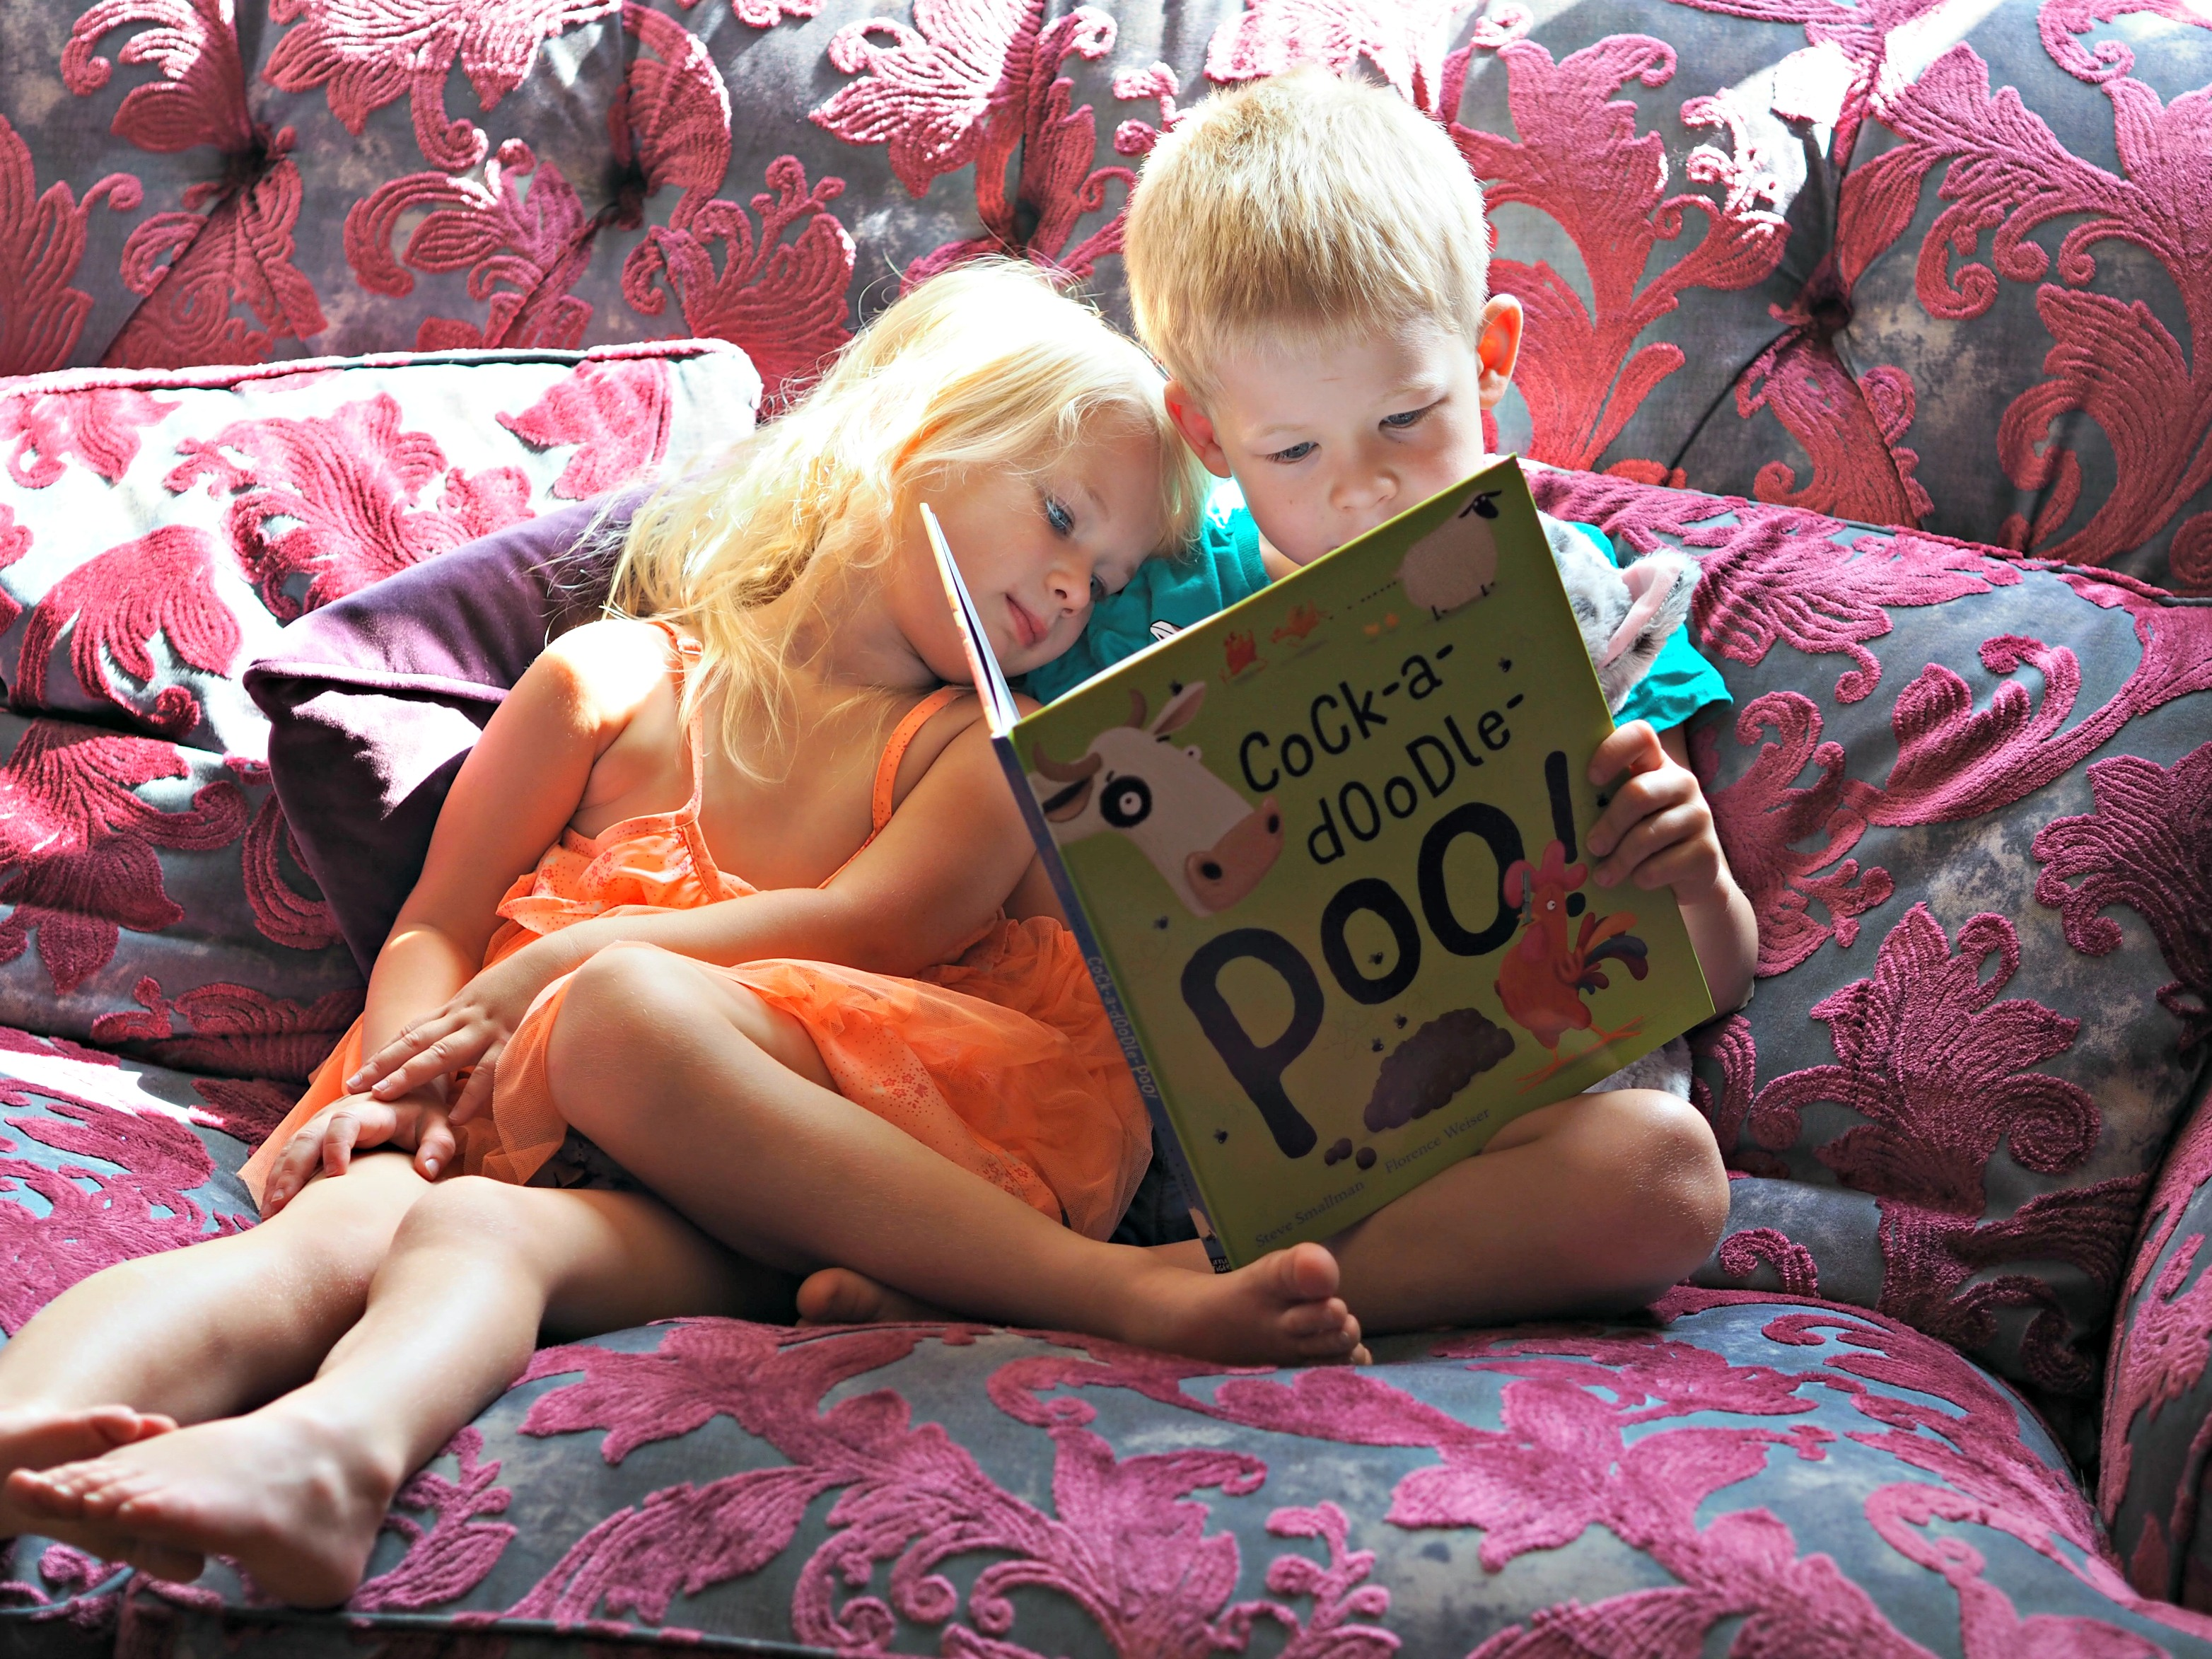 CHILDREN'S BOOK REVIEW Cock-a-Doodle-Poo by Steve Smallman - reading together